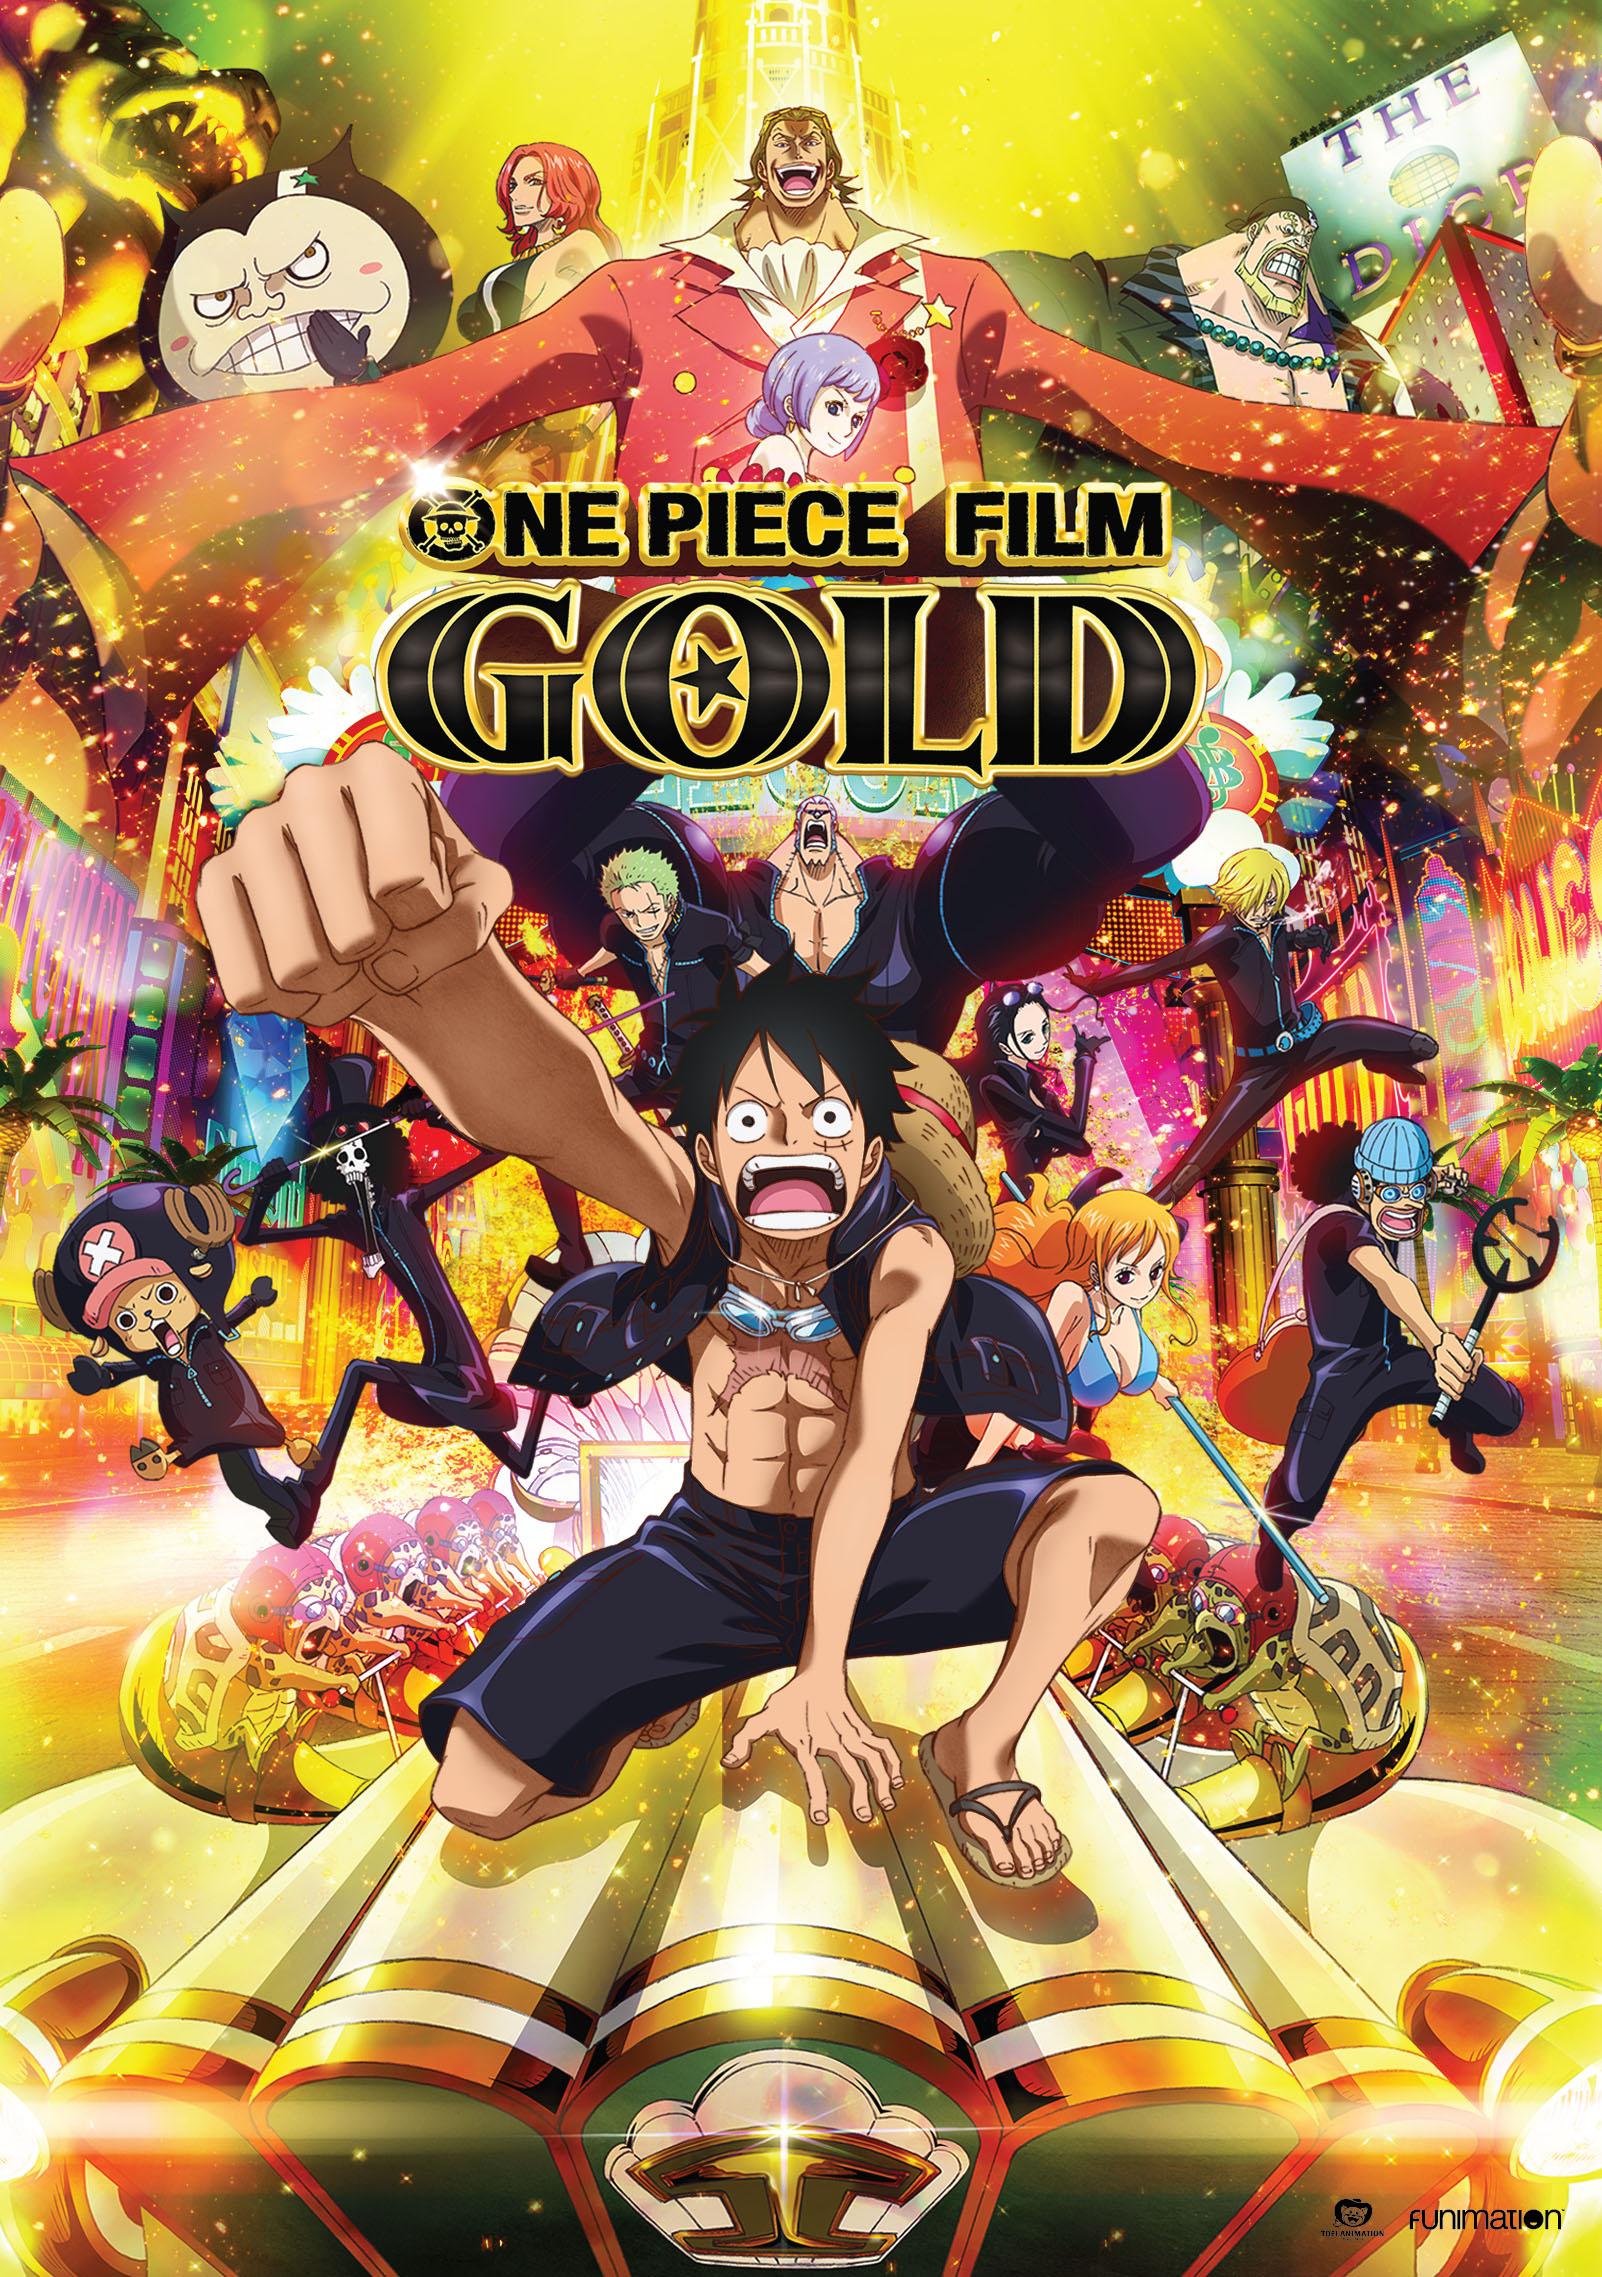 https://www.rightstufanime.com/images/productImages/704400097027_anime-one-piece-film-gold-movie-dvd-primary.jpg